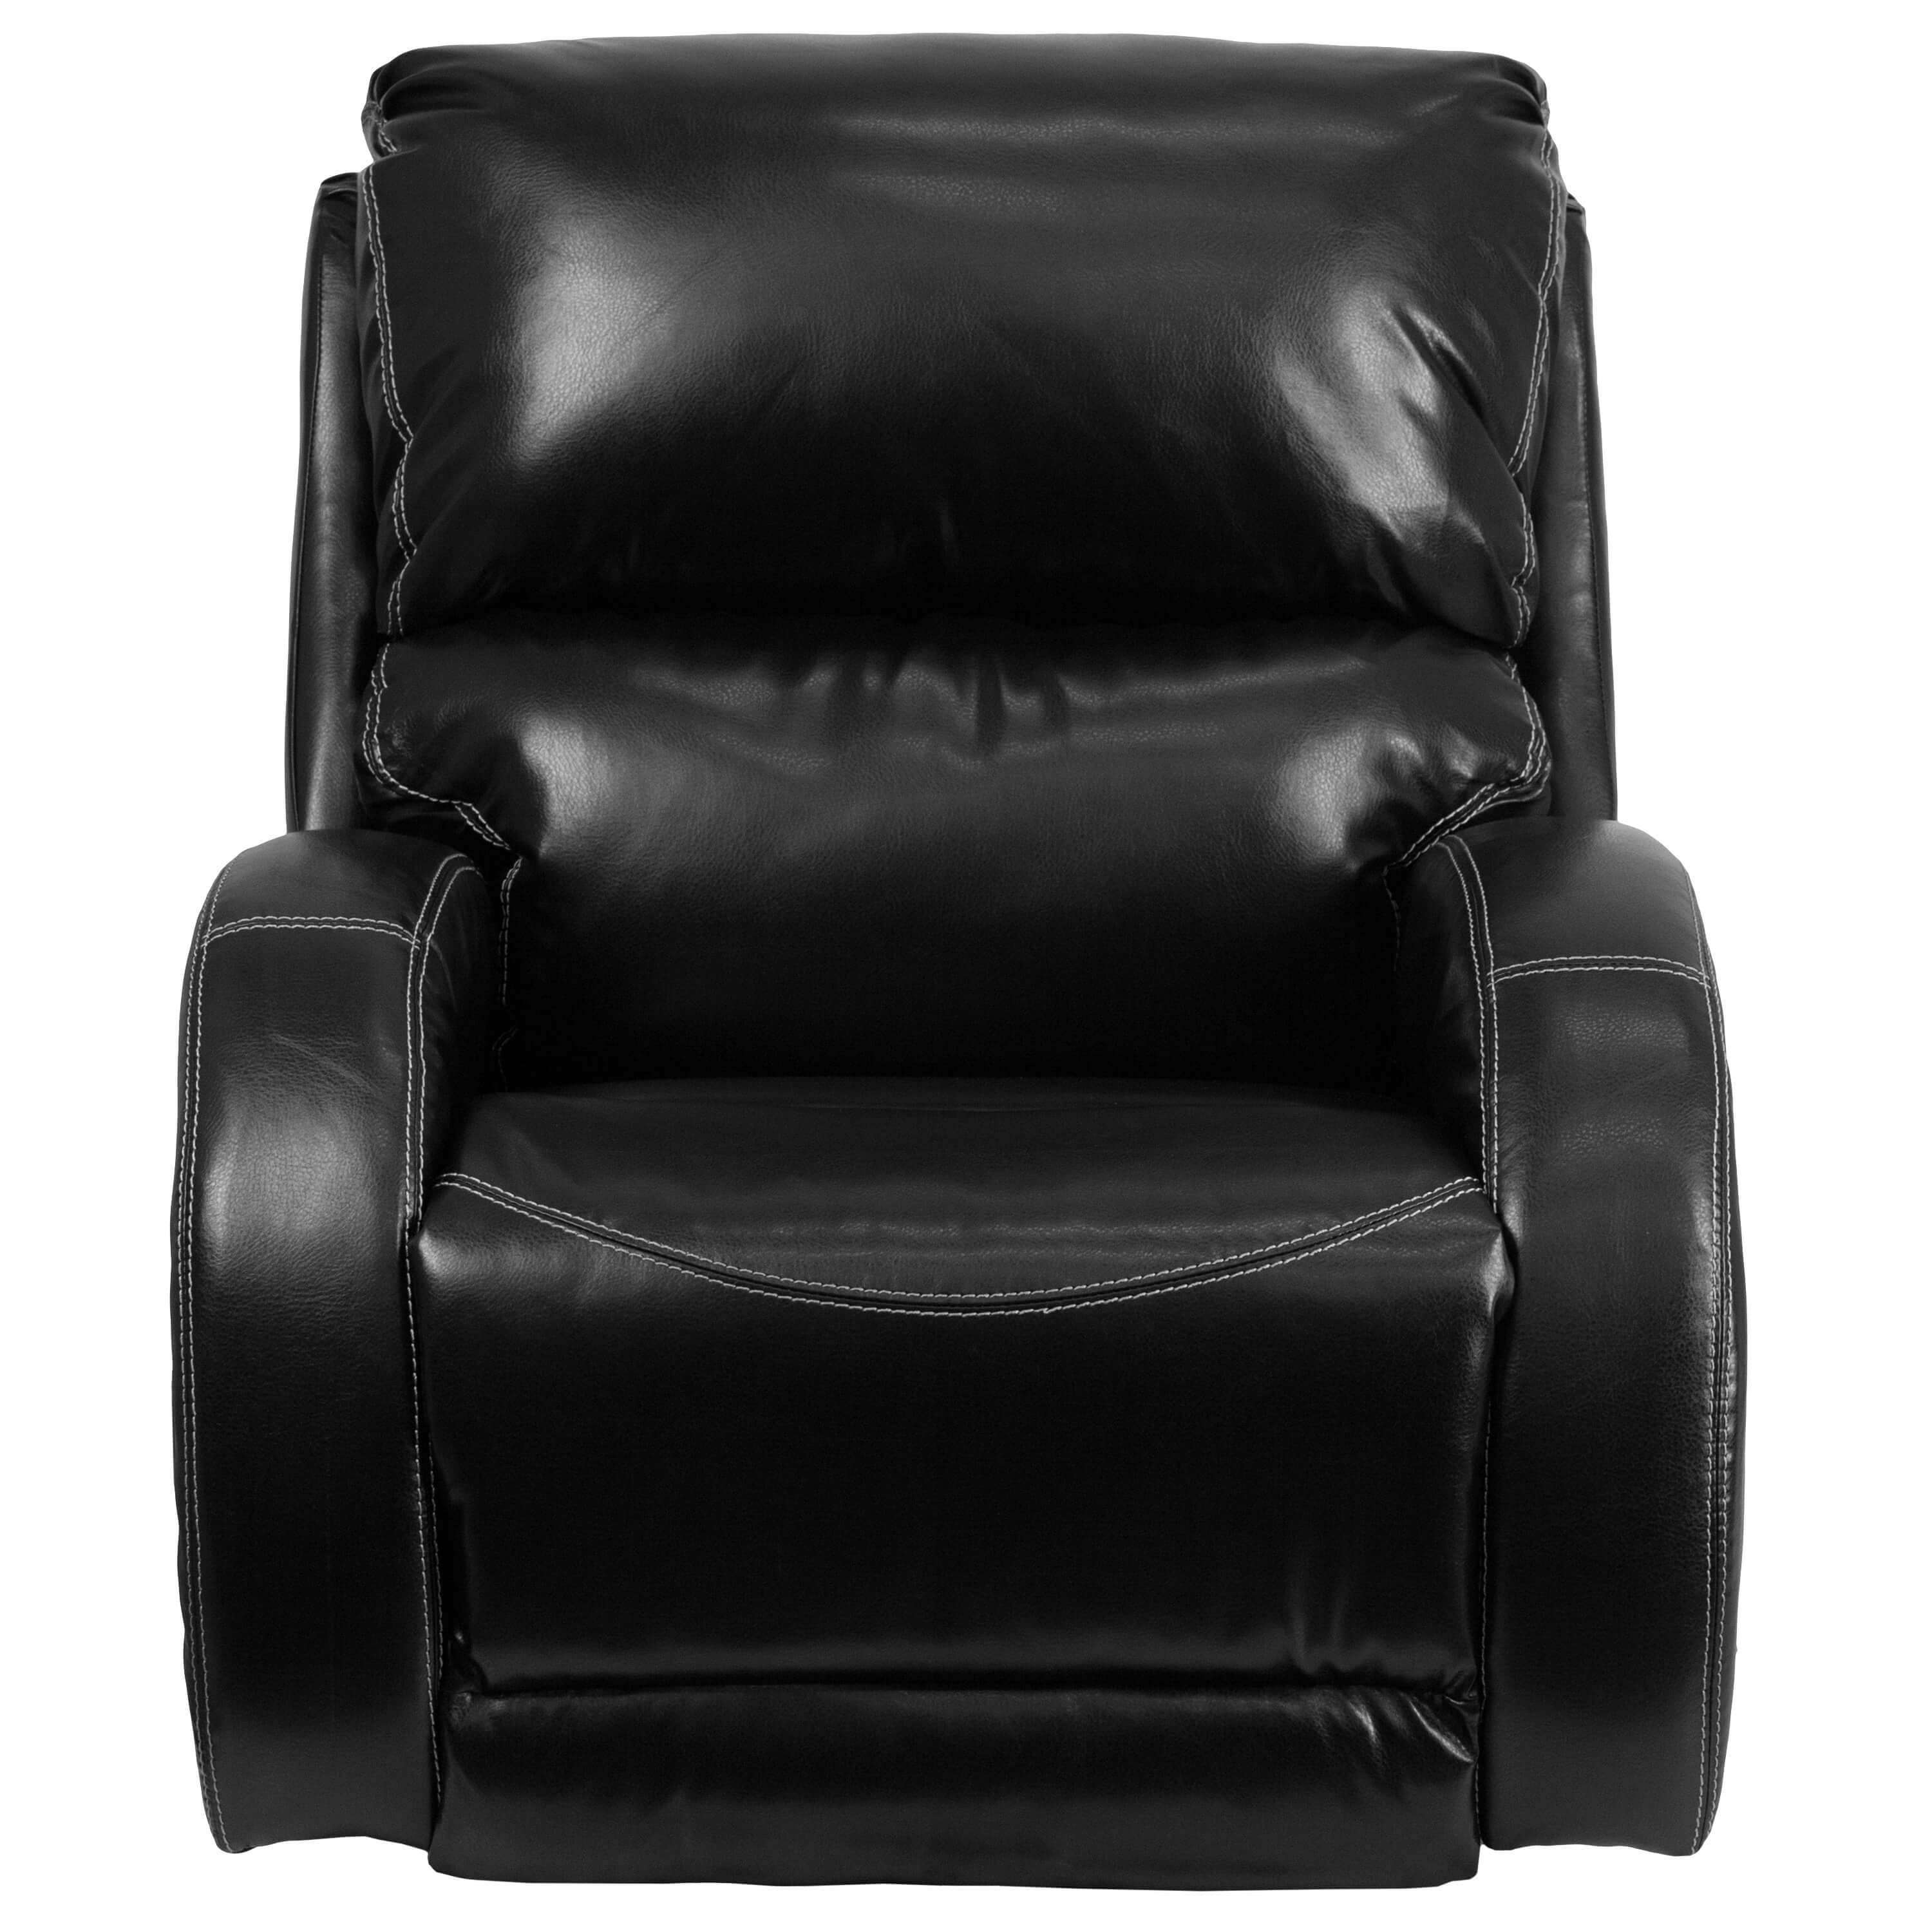 Leather rocking recliner front view